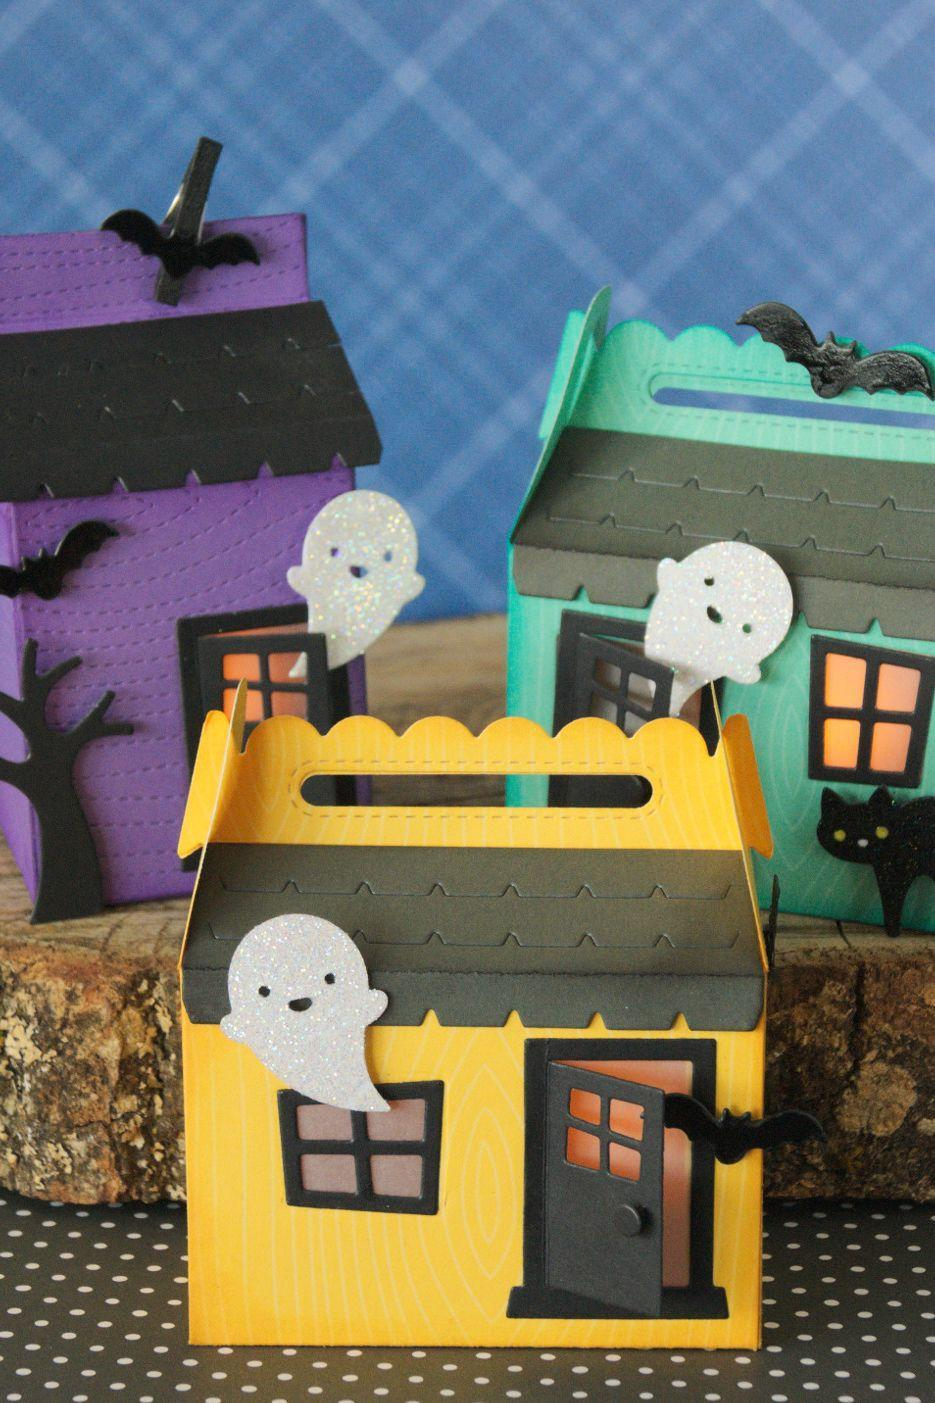 """<p>Paper treat boxes are the perfect base for kids to dream up and decorate their own haunted houses. Make a set and then display them on your mantel (like you would a Christmas village). </p><p><strong>Get the tutorial at <a href=""""https://blog.lawnfawn.com/2017/08/lawn-fawn-intro-scalloped-treat-box/"""" rel=""""nofollow noopener"""" target=""""_blank"""" data-ylk=""""slk:Lawn Fawn"""" class=""""link rapid-noclick-resp"""">Lawn Fawn</a>.</strong> </p>"""